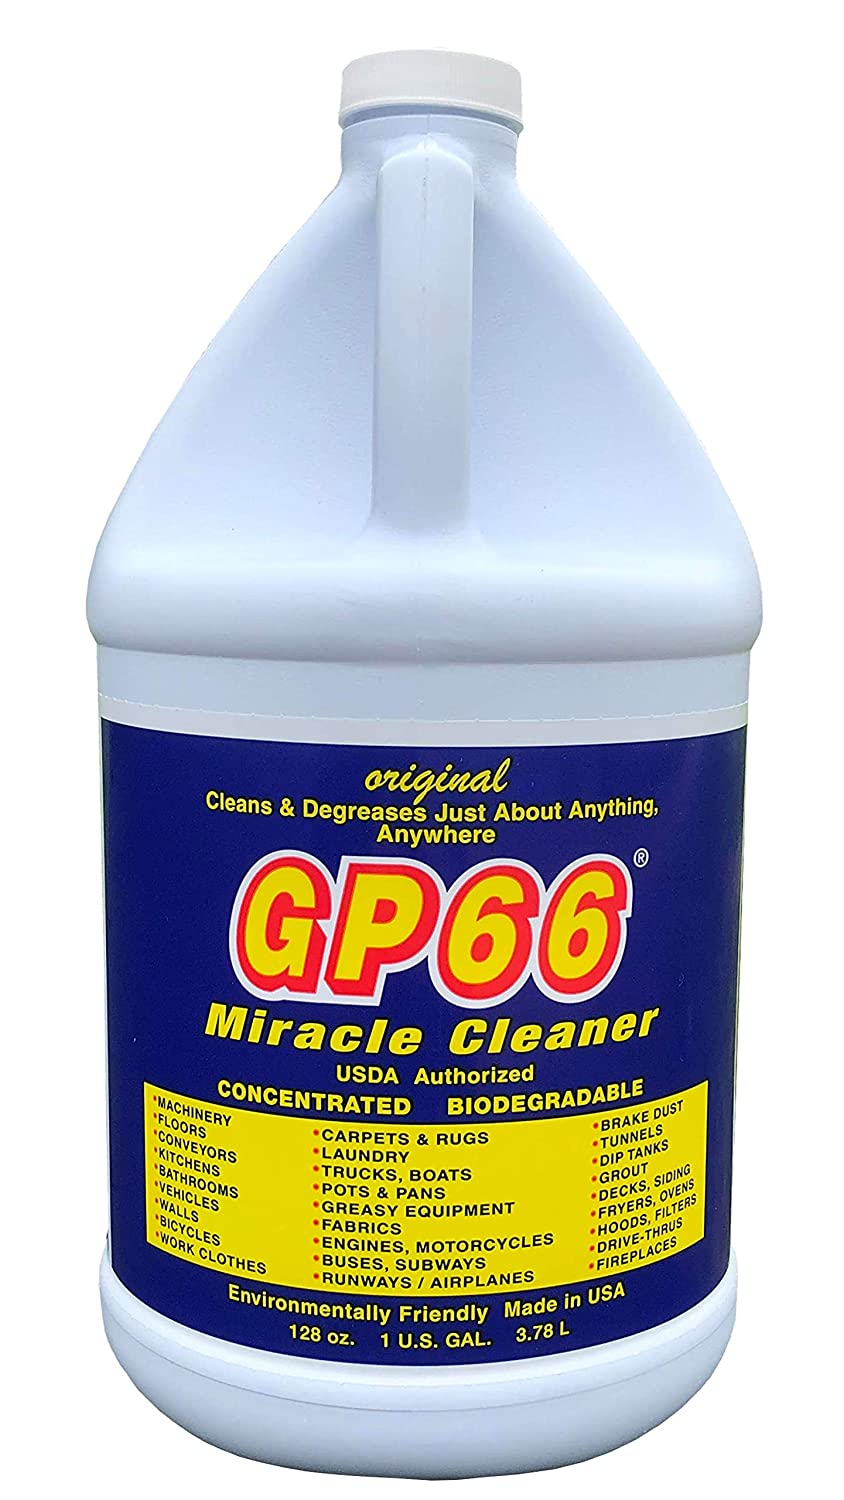 gp66 Miracle Cleanerメーカー(1、ガロン) - Cleans and Degreases JustについてAnything anywhere-green product-concentrated-non toxic-non hazardous-made in the usa-all purpose-multi目的   B07CZQHHCR